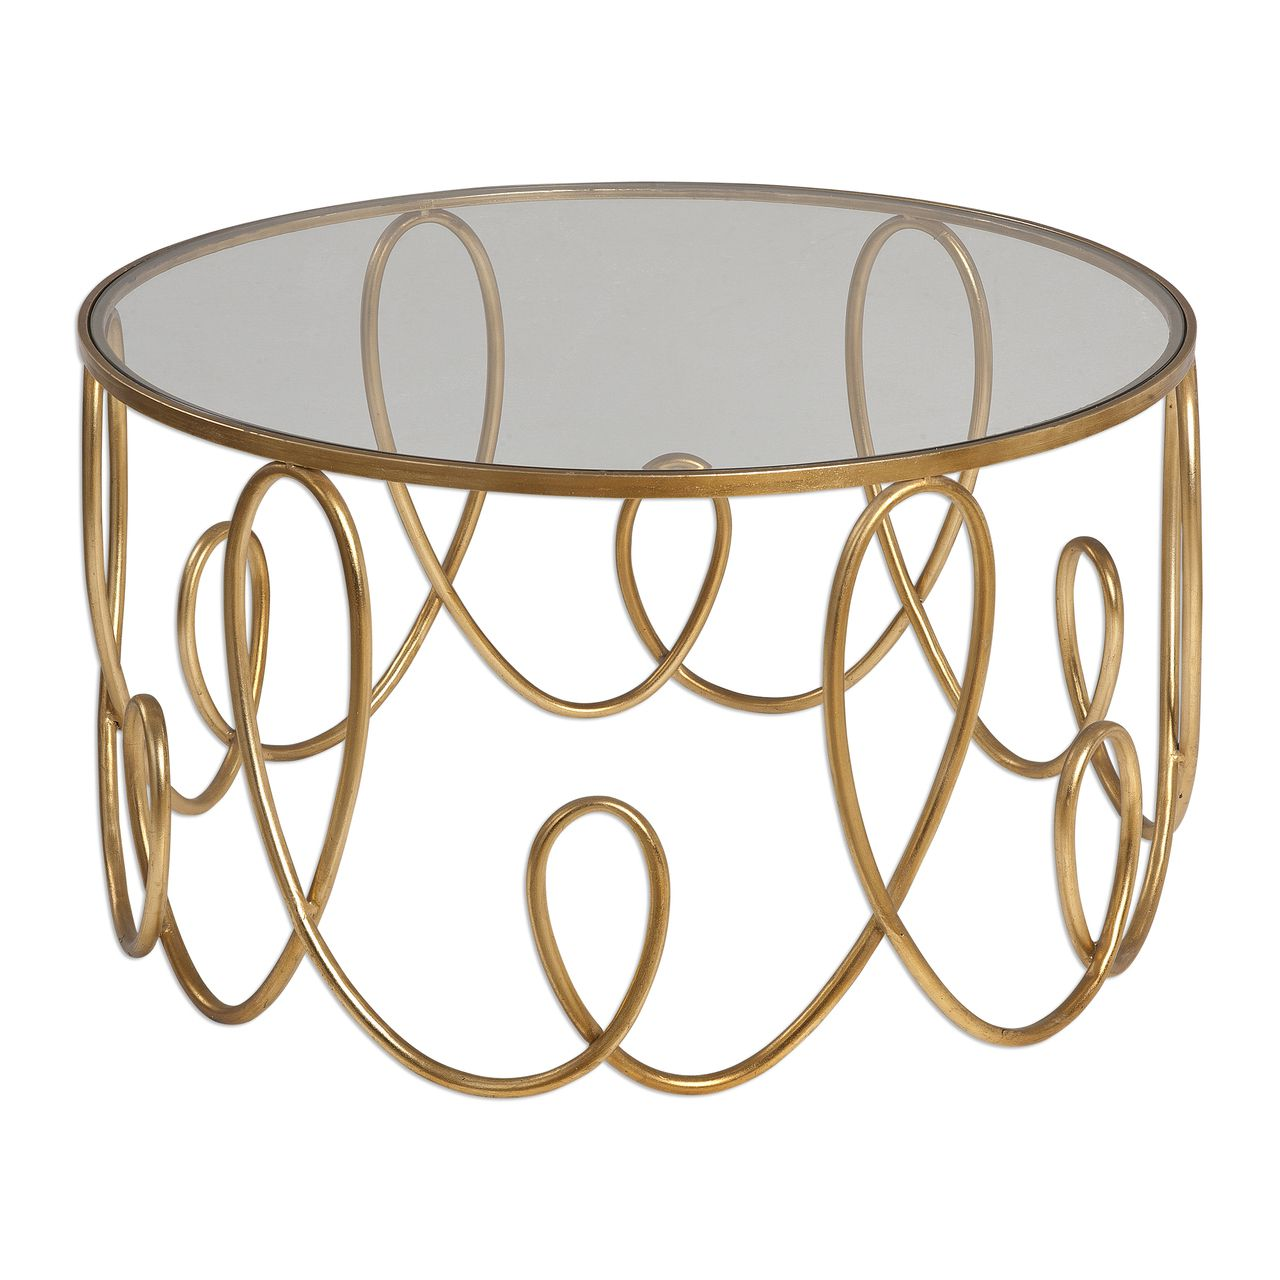 Coffee table with squiggly gold base and glass top.